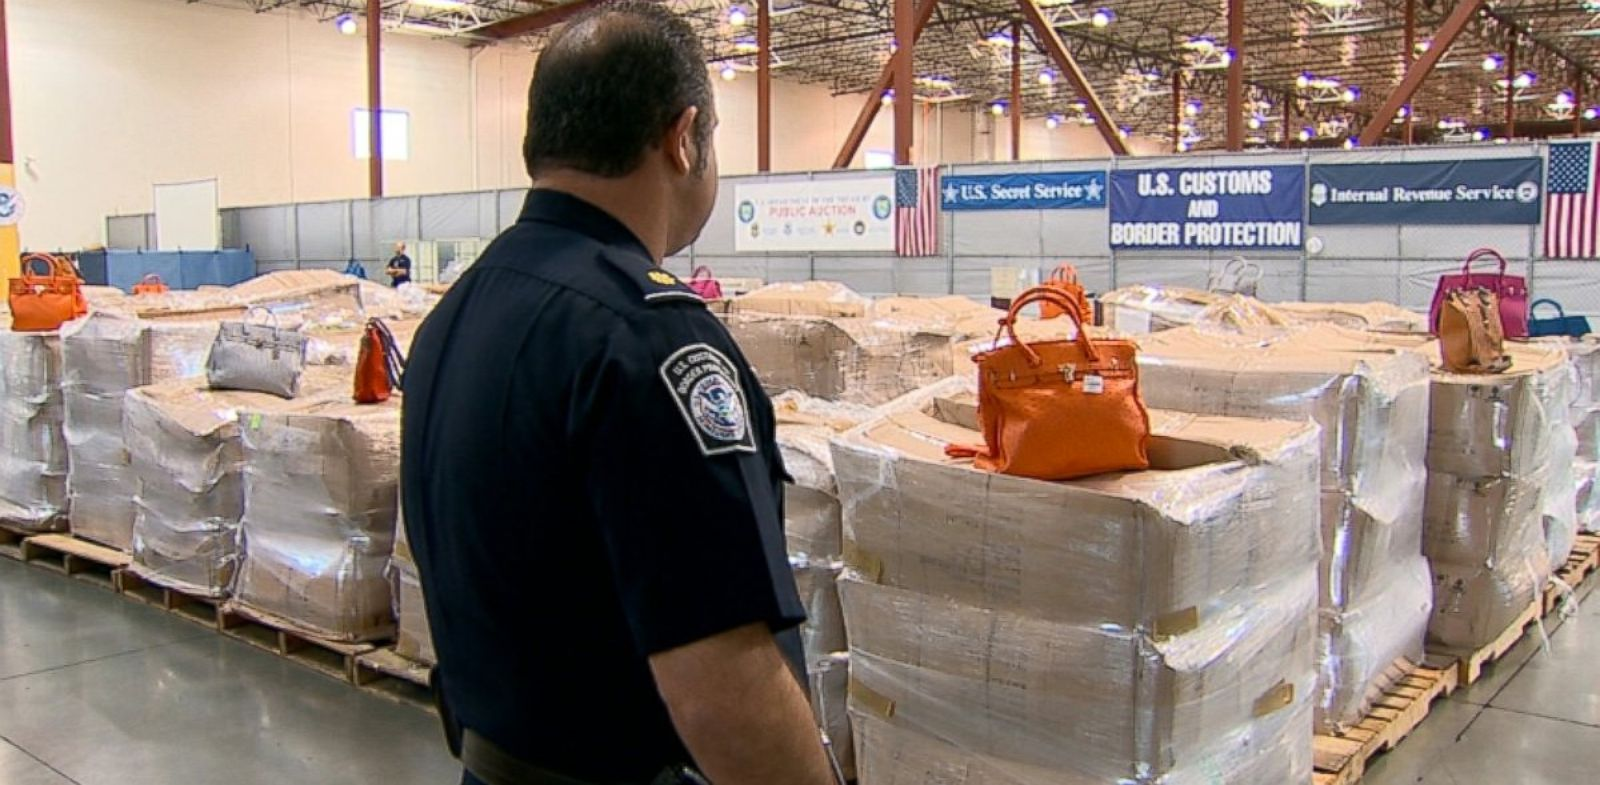 PHOTO: An officer looks at a shipment of seized counterfeit Hermes bags